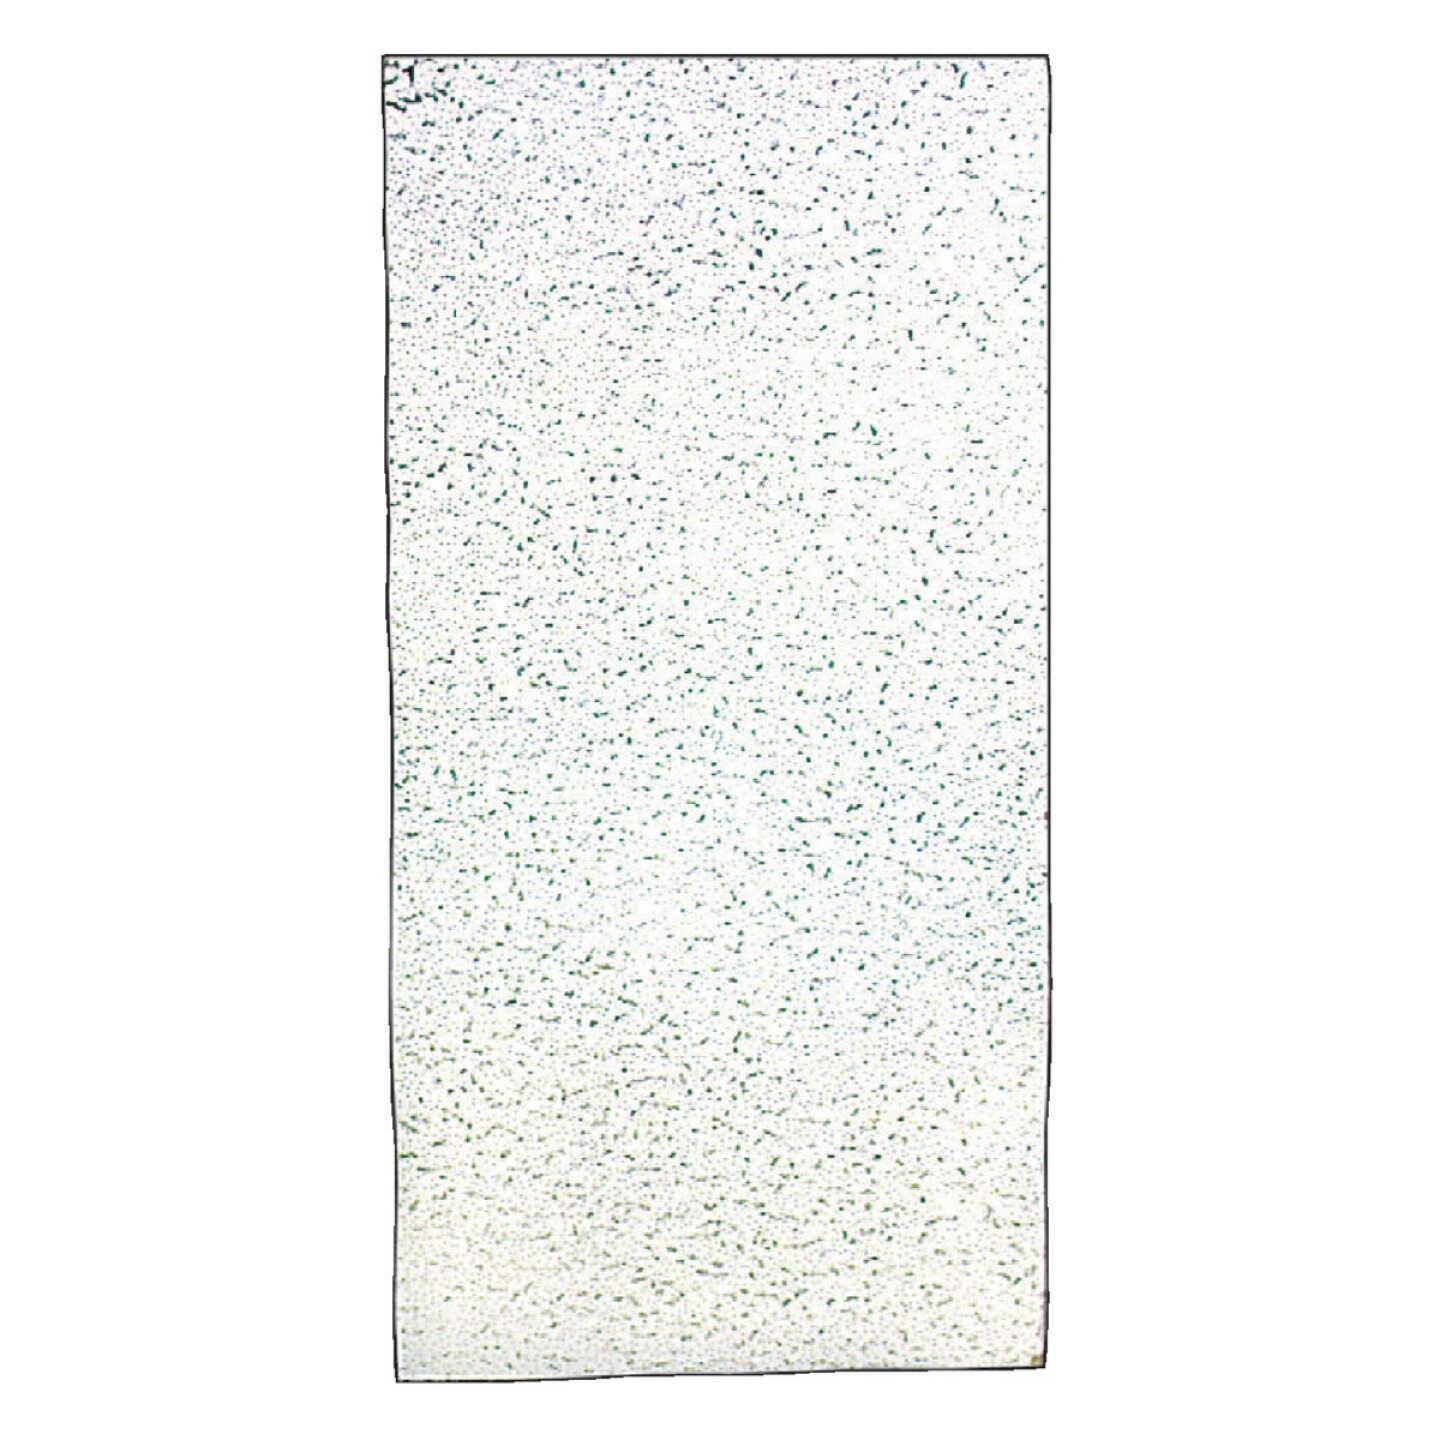 Fifth Avenue 2 Ft. x 4 Ft. Fire Rated White Mineral Fiber Ceiling Tile (8-Count) Image 2